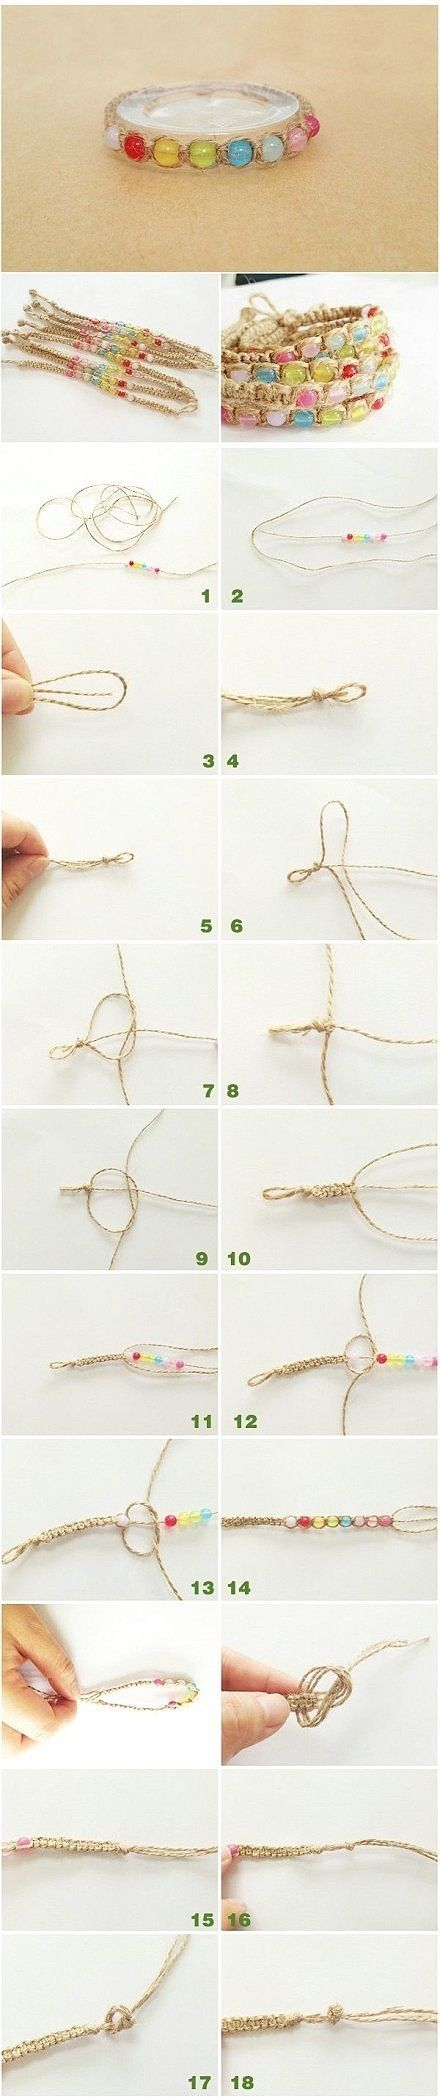 Craft Bracelet Pictures, Photos, and Images for Facebook, Tumblr, Pinterest, and Twitter